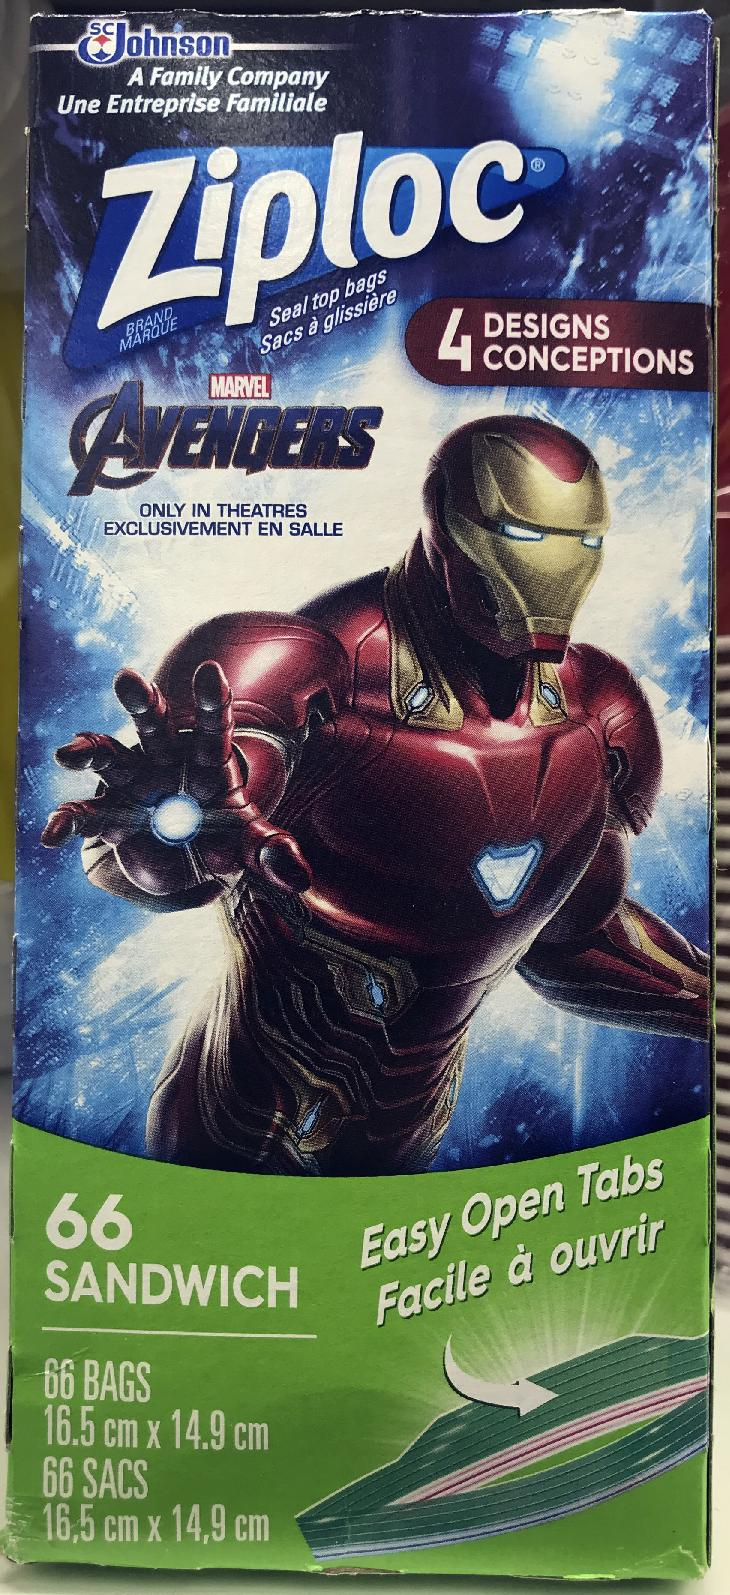 Marvel Avengers collector series. The front of the box cover for a Ziploc snack bags.  This limited edition box has an image of Iron Man.